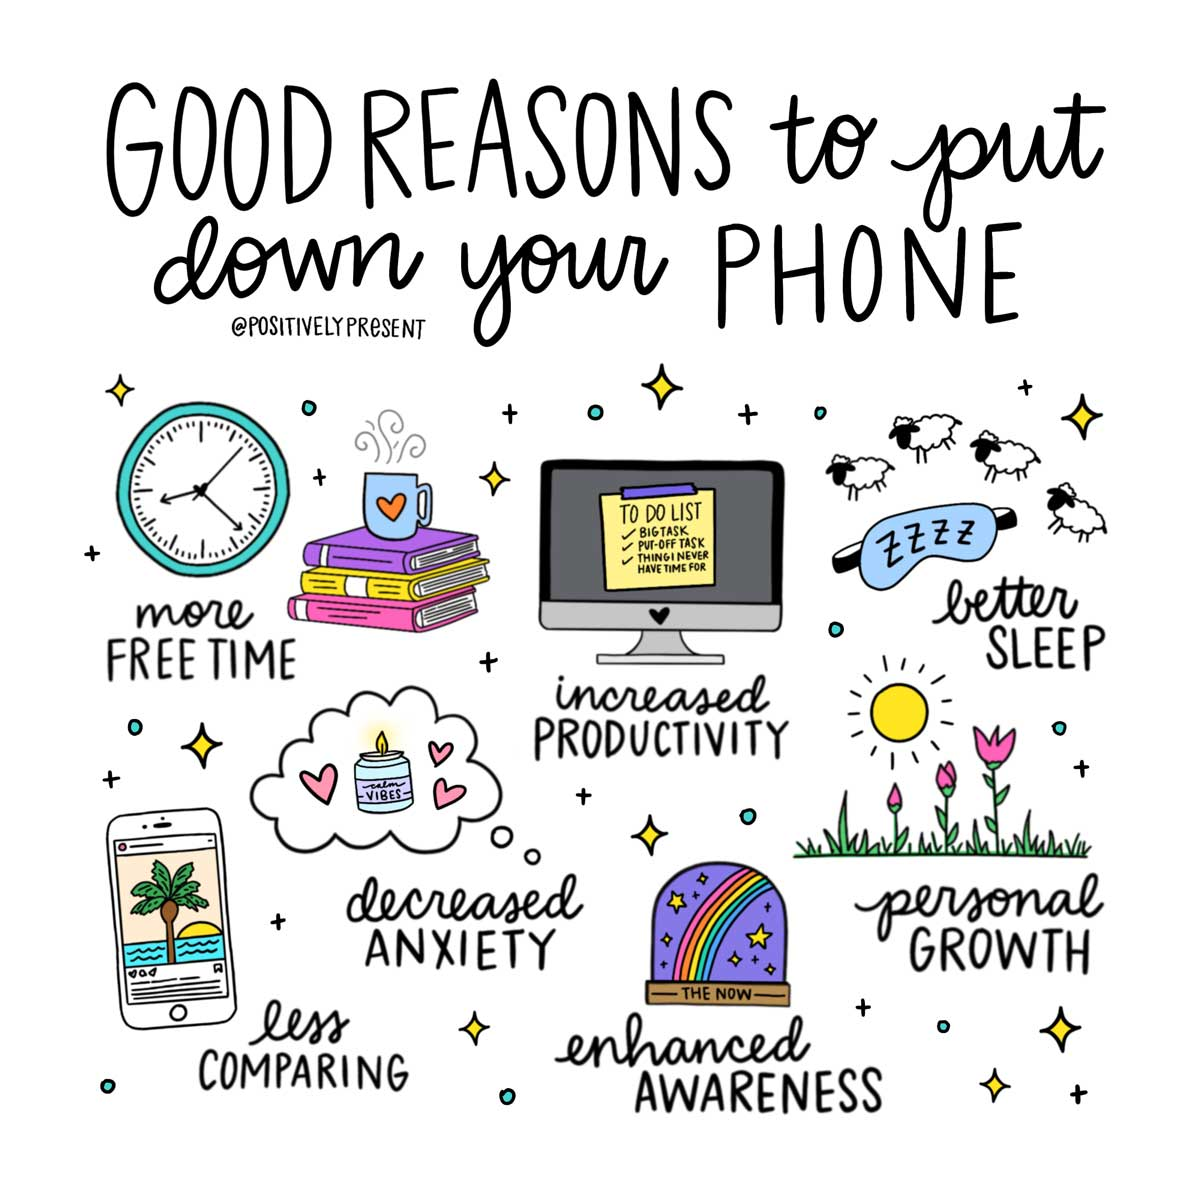 7 good reasons to put down your phone with words and drawings.